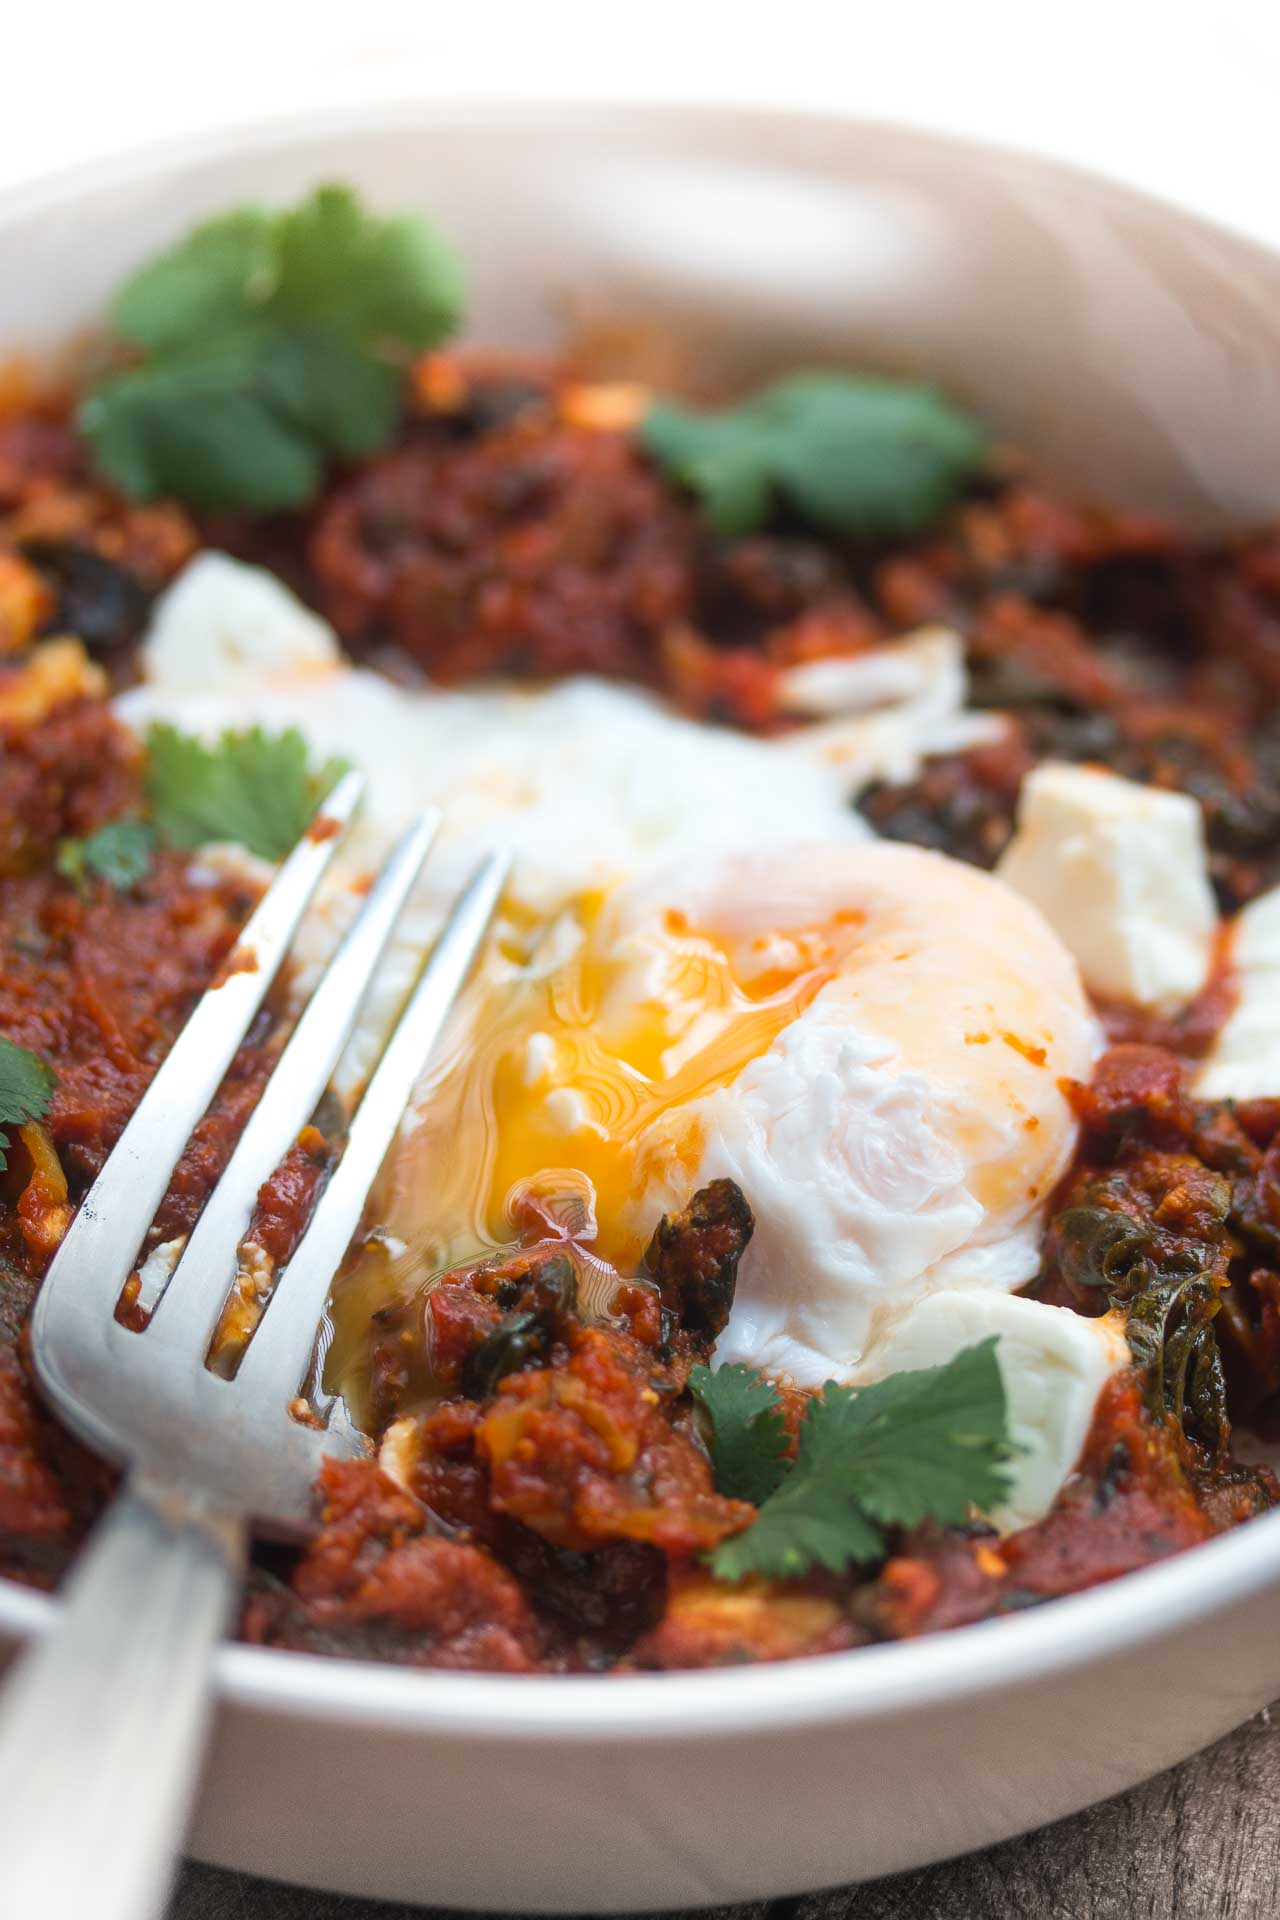 A delicious dish made with eggs cooked in a spicy tomato sauce. Goes well with crusty bread!